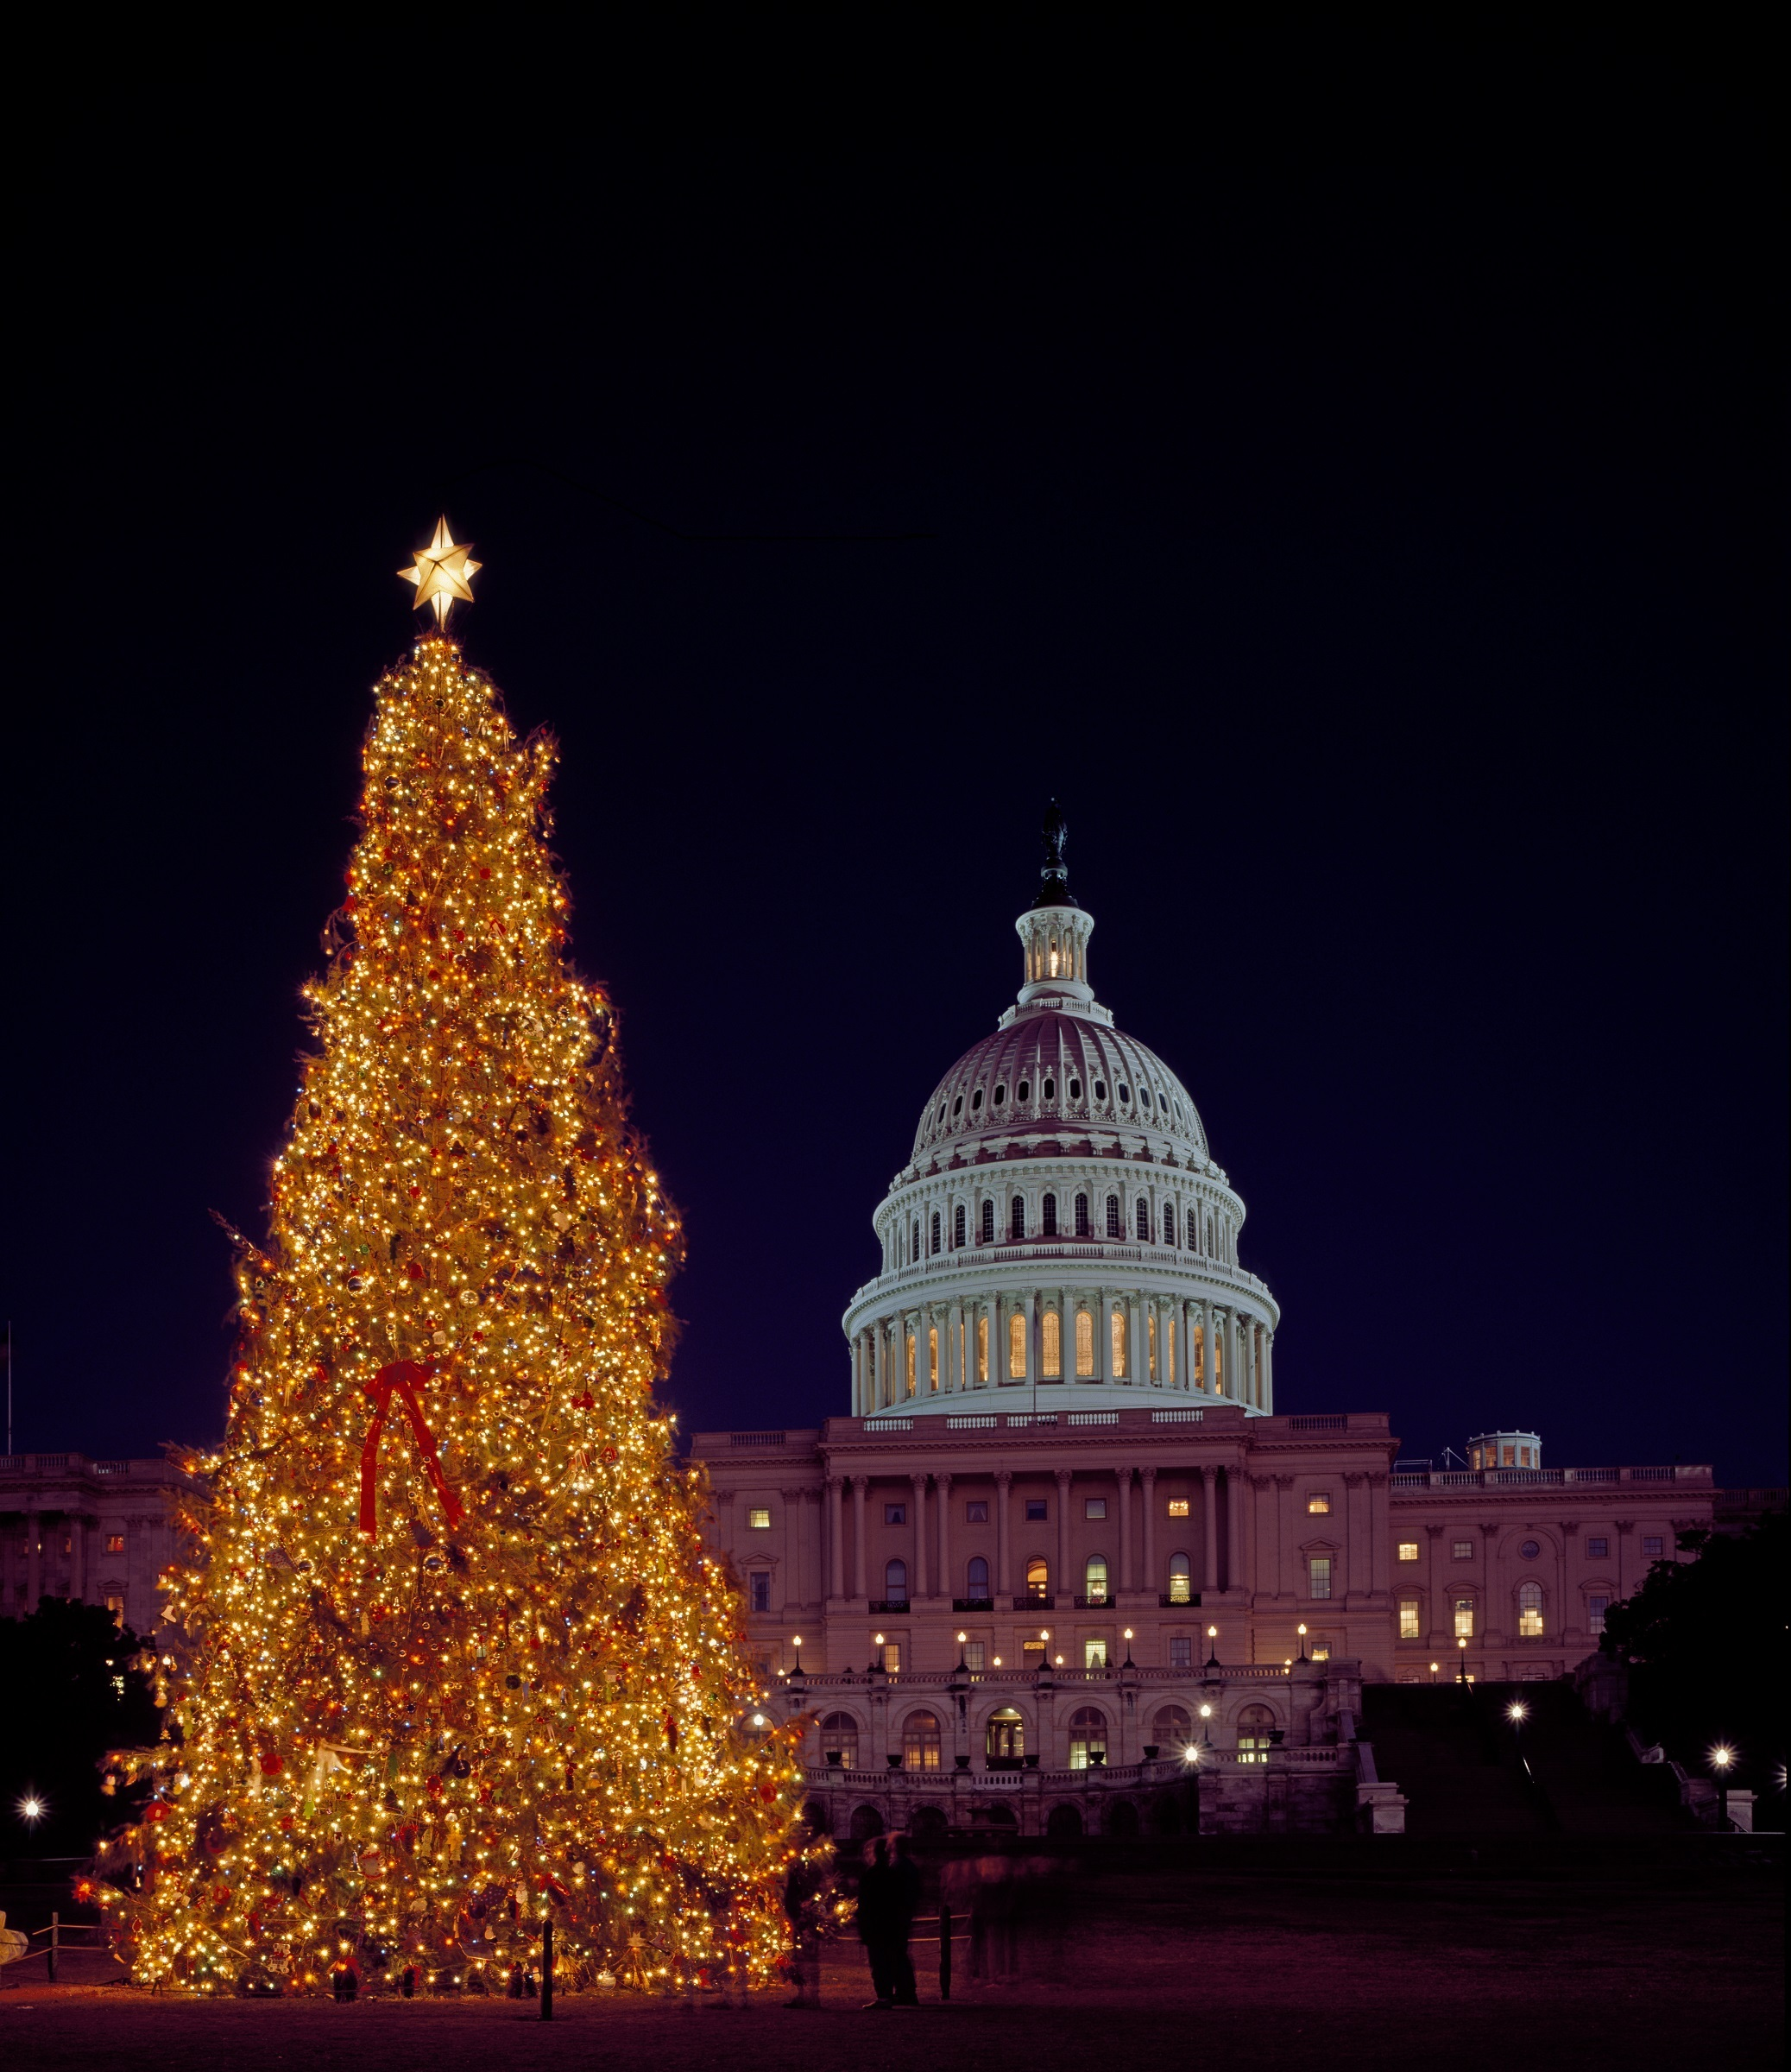 Christmas Tree, Building, Capitol, Christmas, Construction, HQ Photo